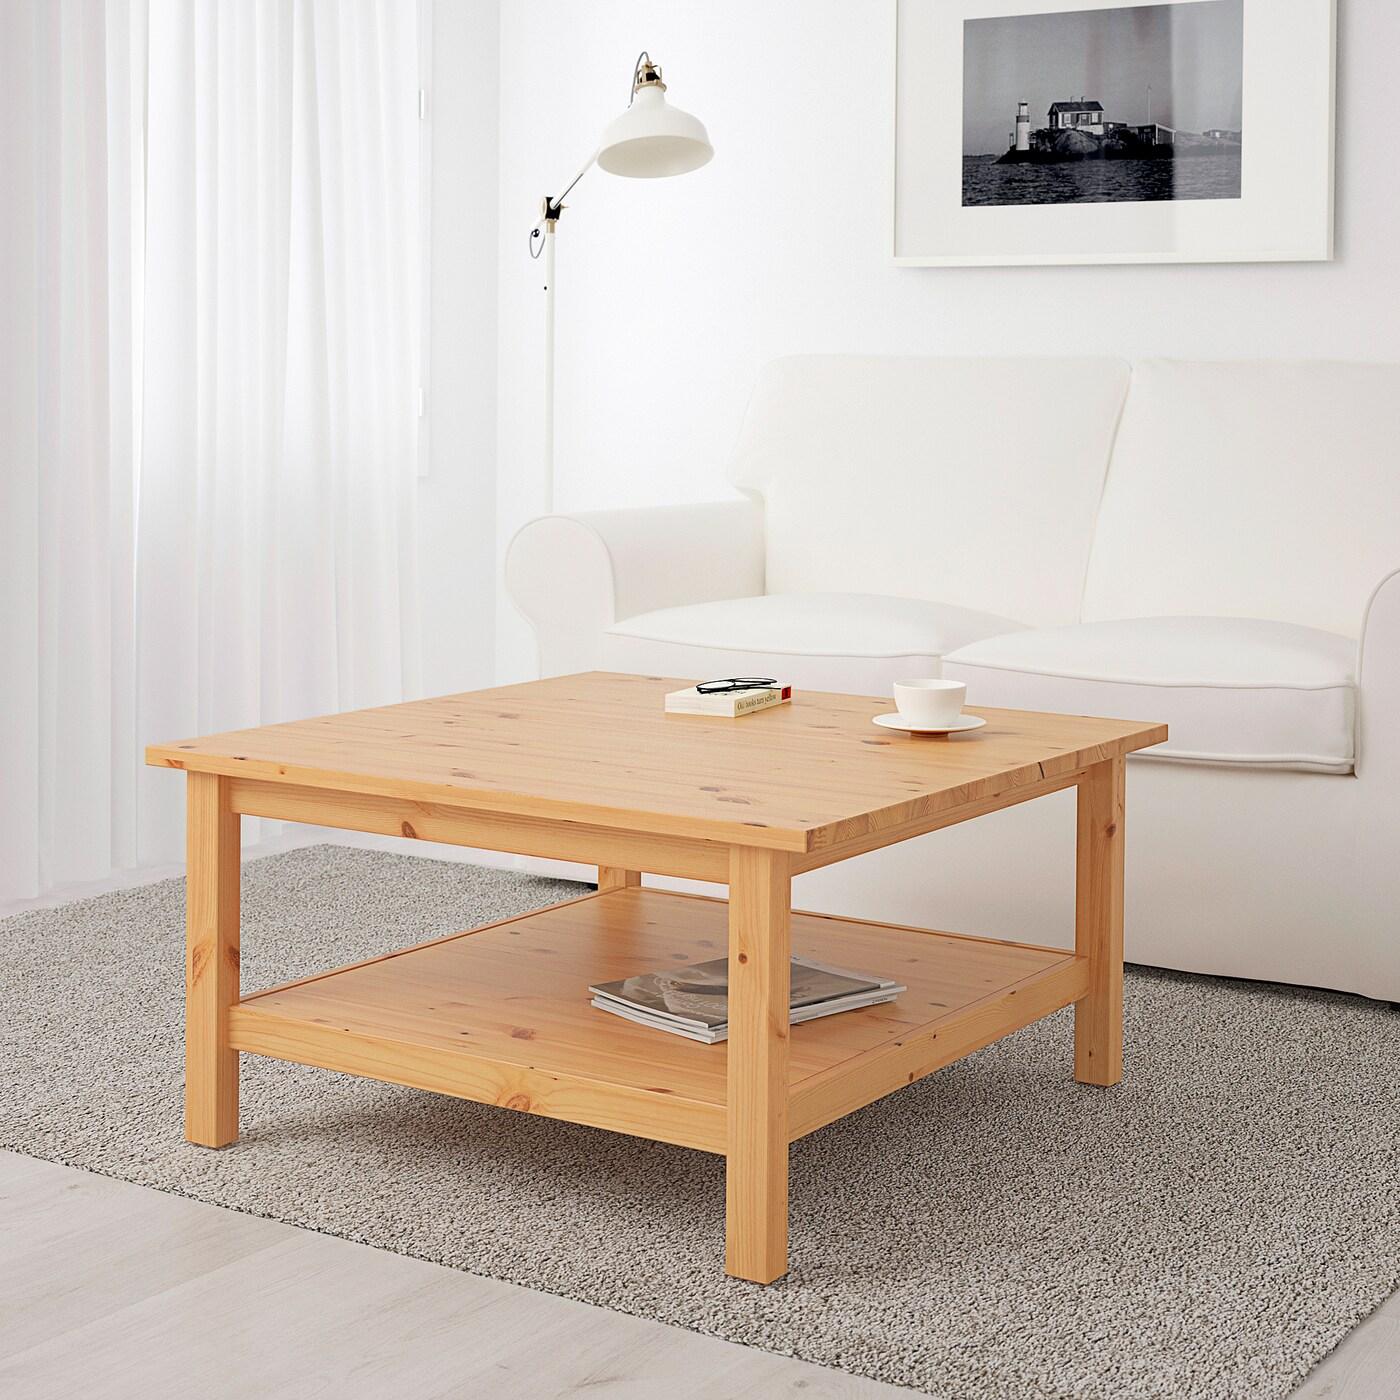 hemnes coffee table light brown 90x90 cm